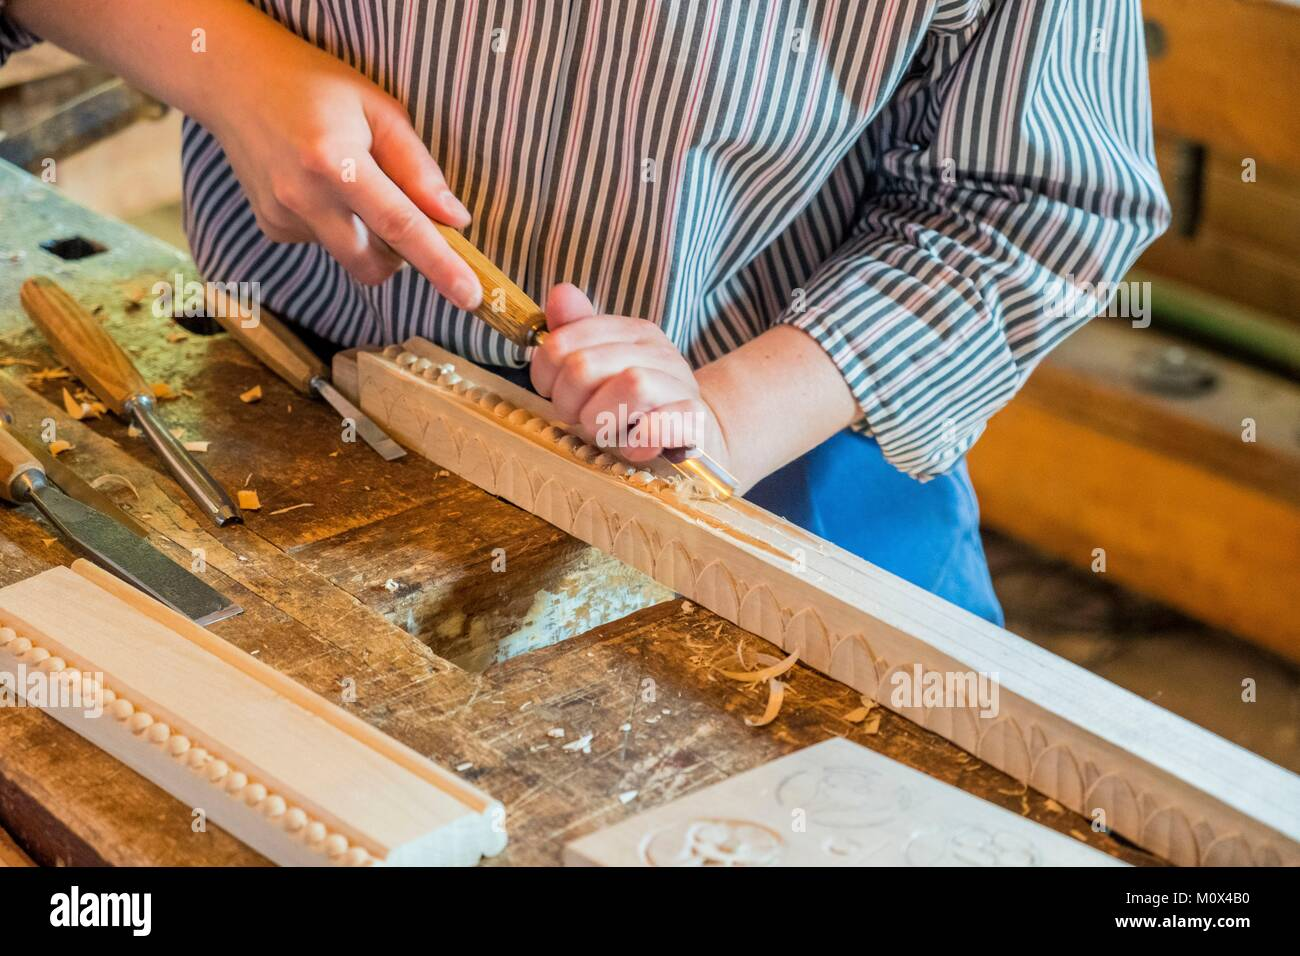 Sweden,Stockholm,Isle of Djurgarden,Skansen's open-air museum created in 1891,traces the life of yesteryear,woodworking - Stock Image